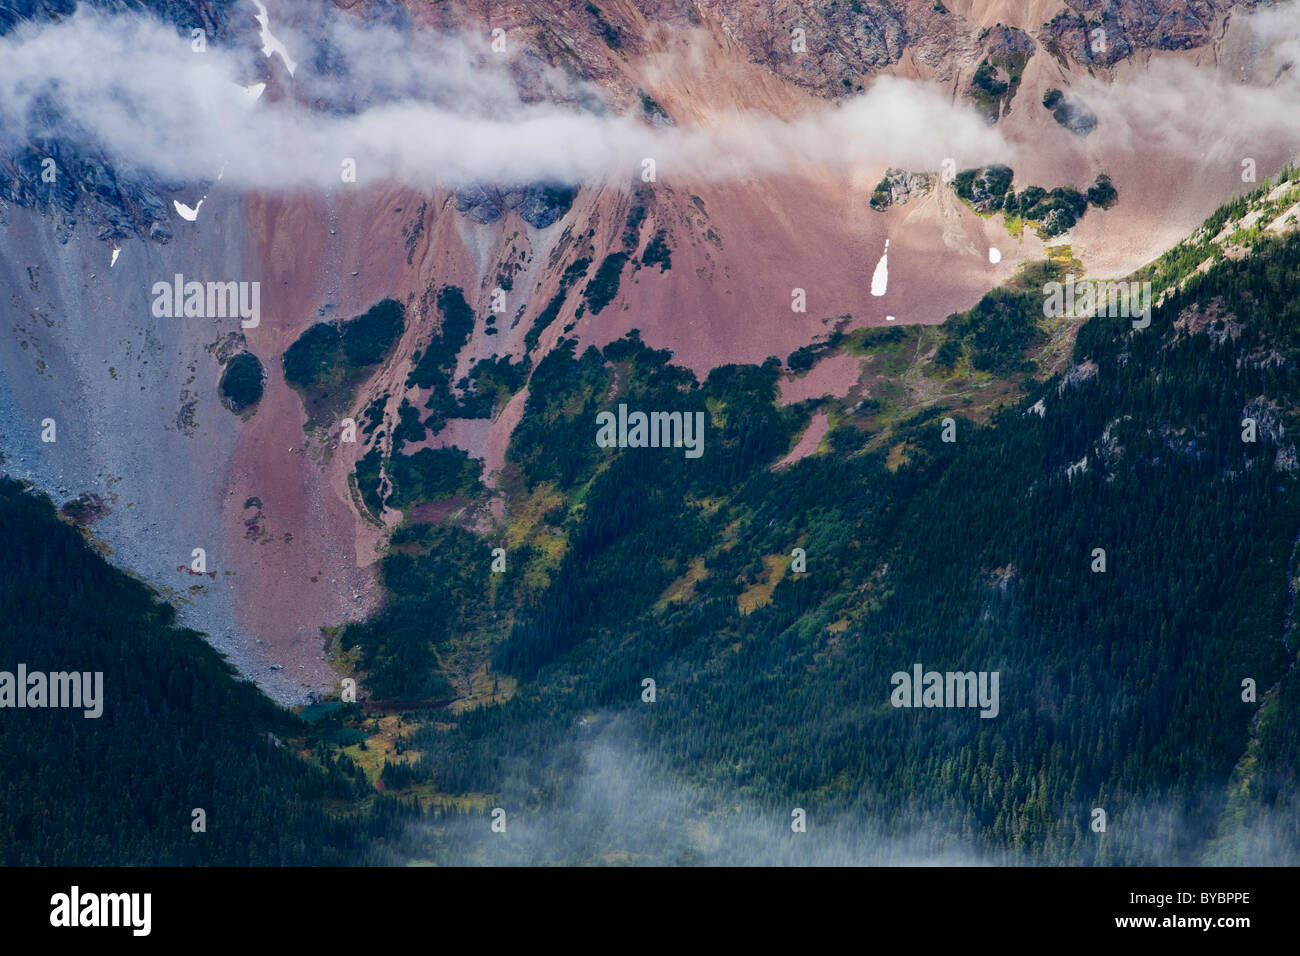 Detail view of the Northeast face of Azurite Peak, Washington Cascades, USA. - Stock Image